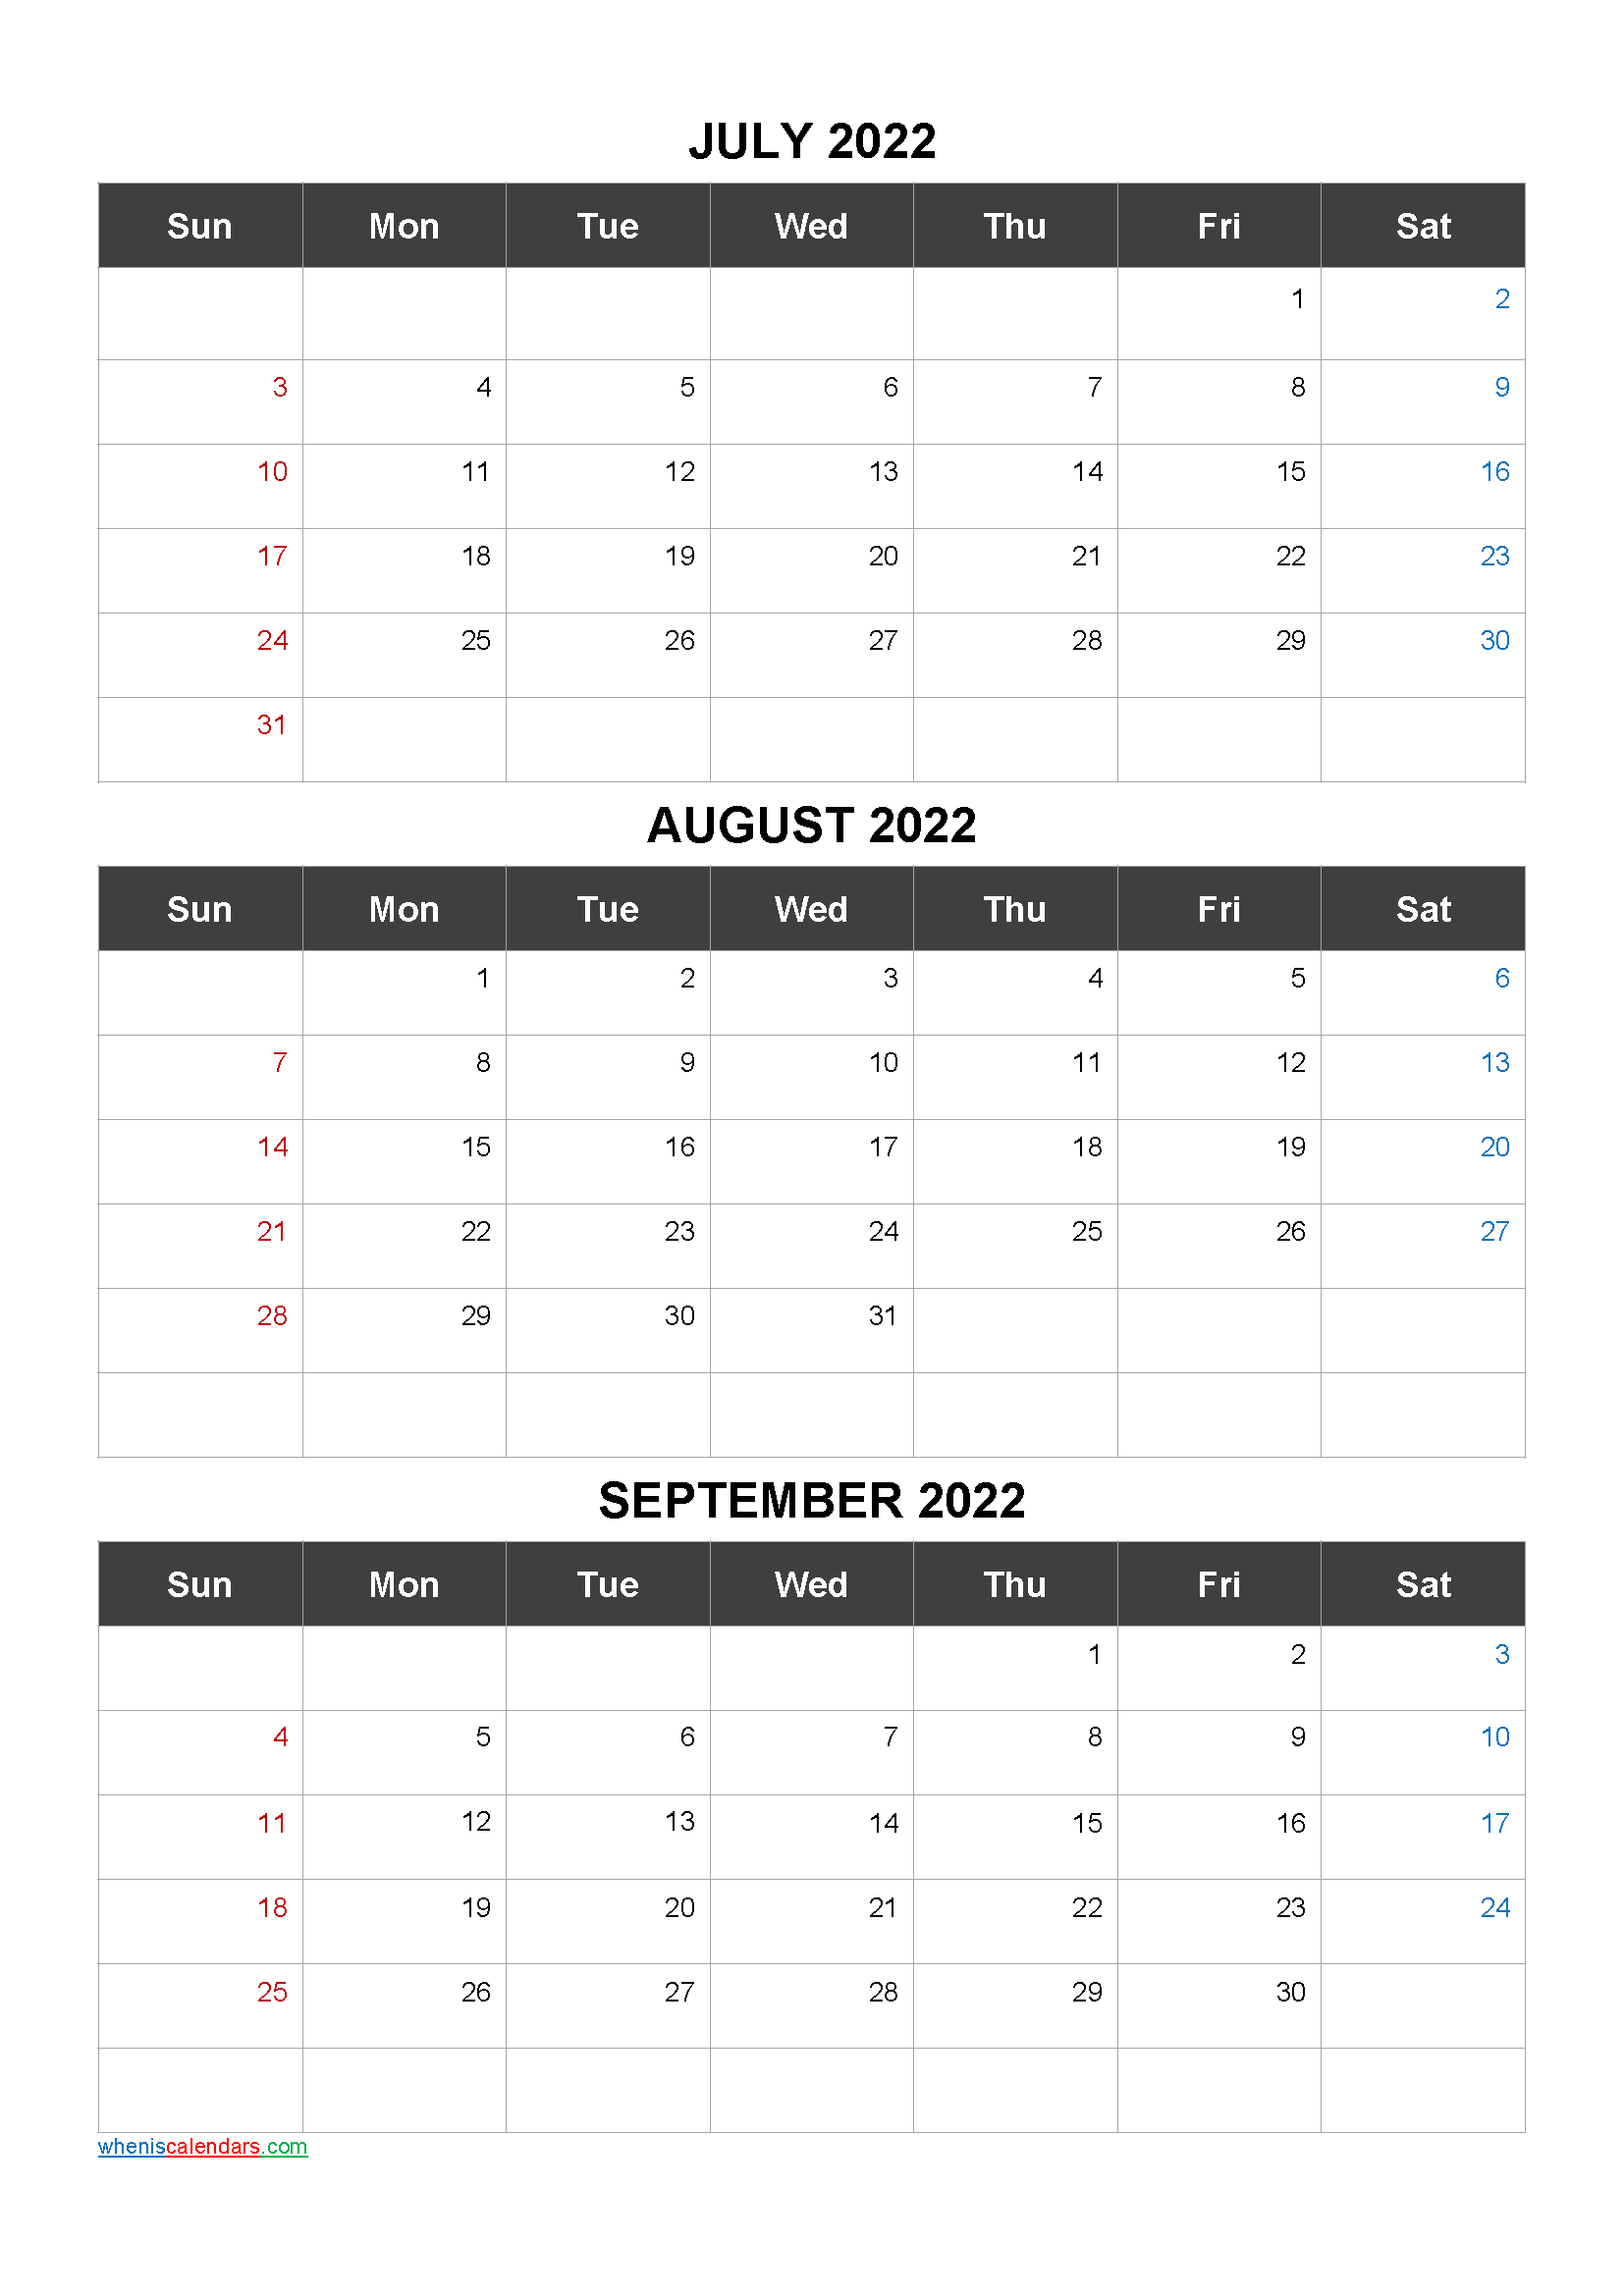 Free Printable 3 Month Calendar2022 July August September